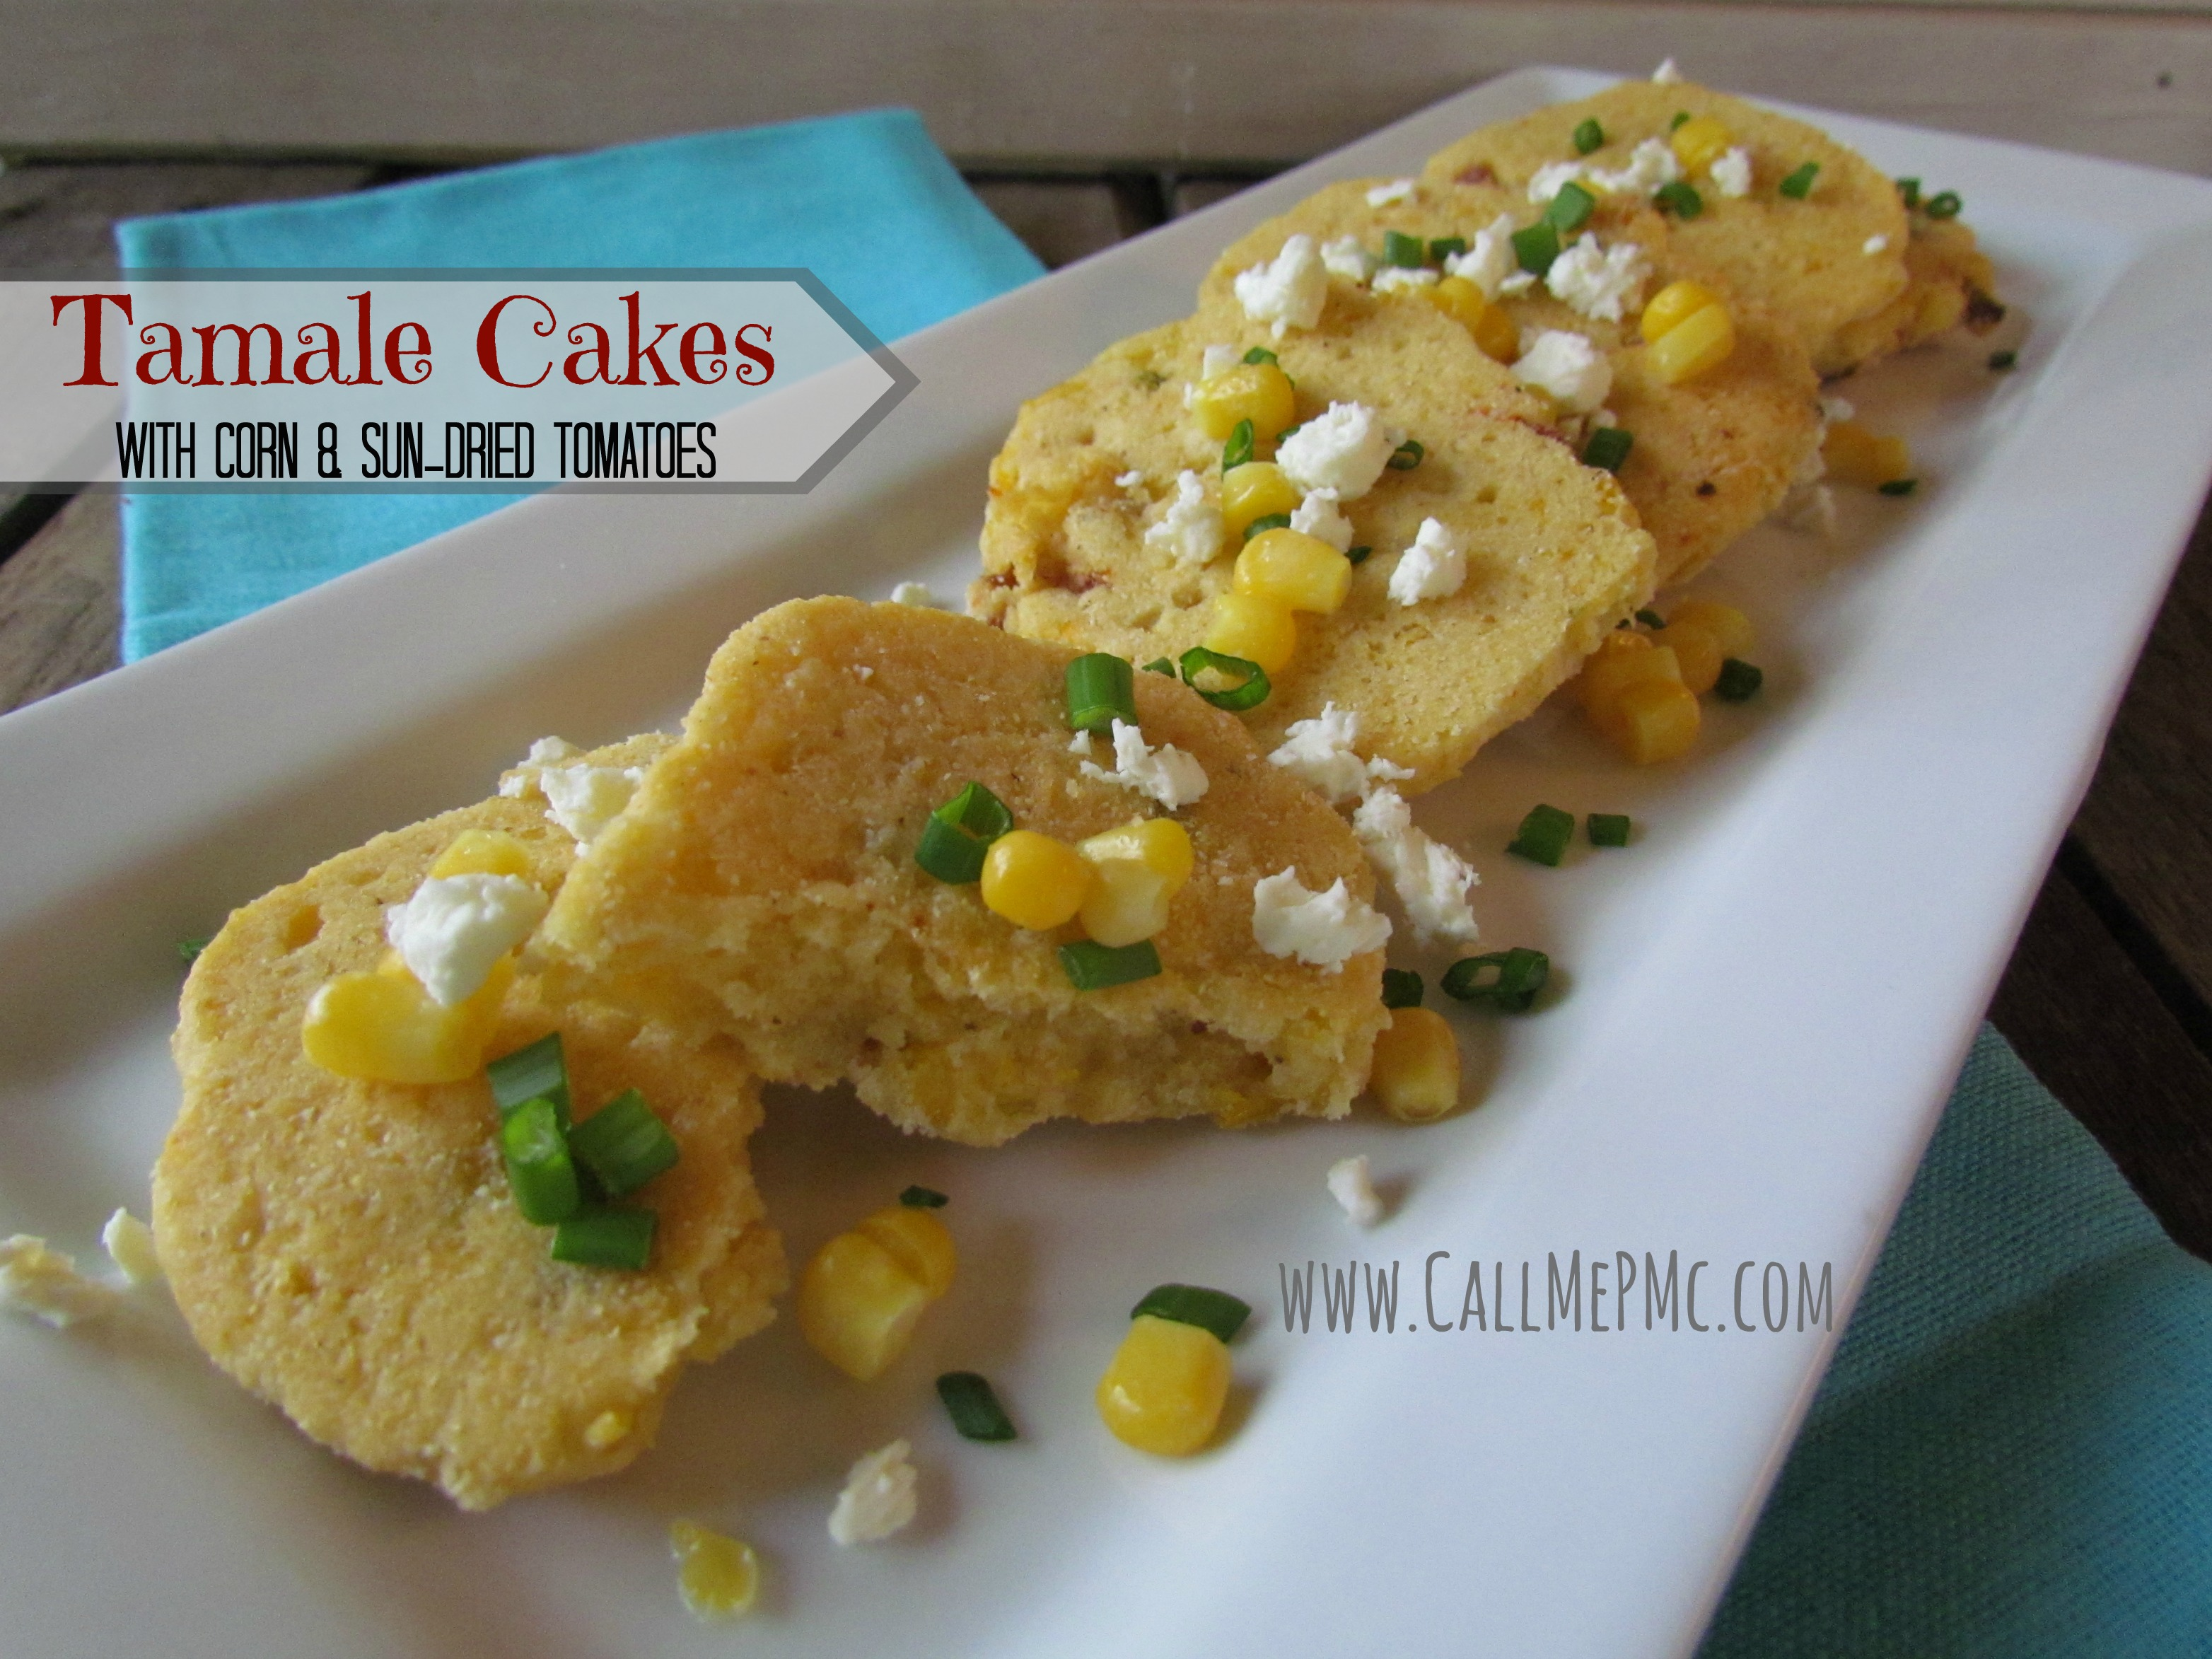 Tamale Cakes with Corn and Sun-dried Tomatoes